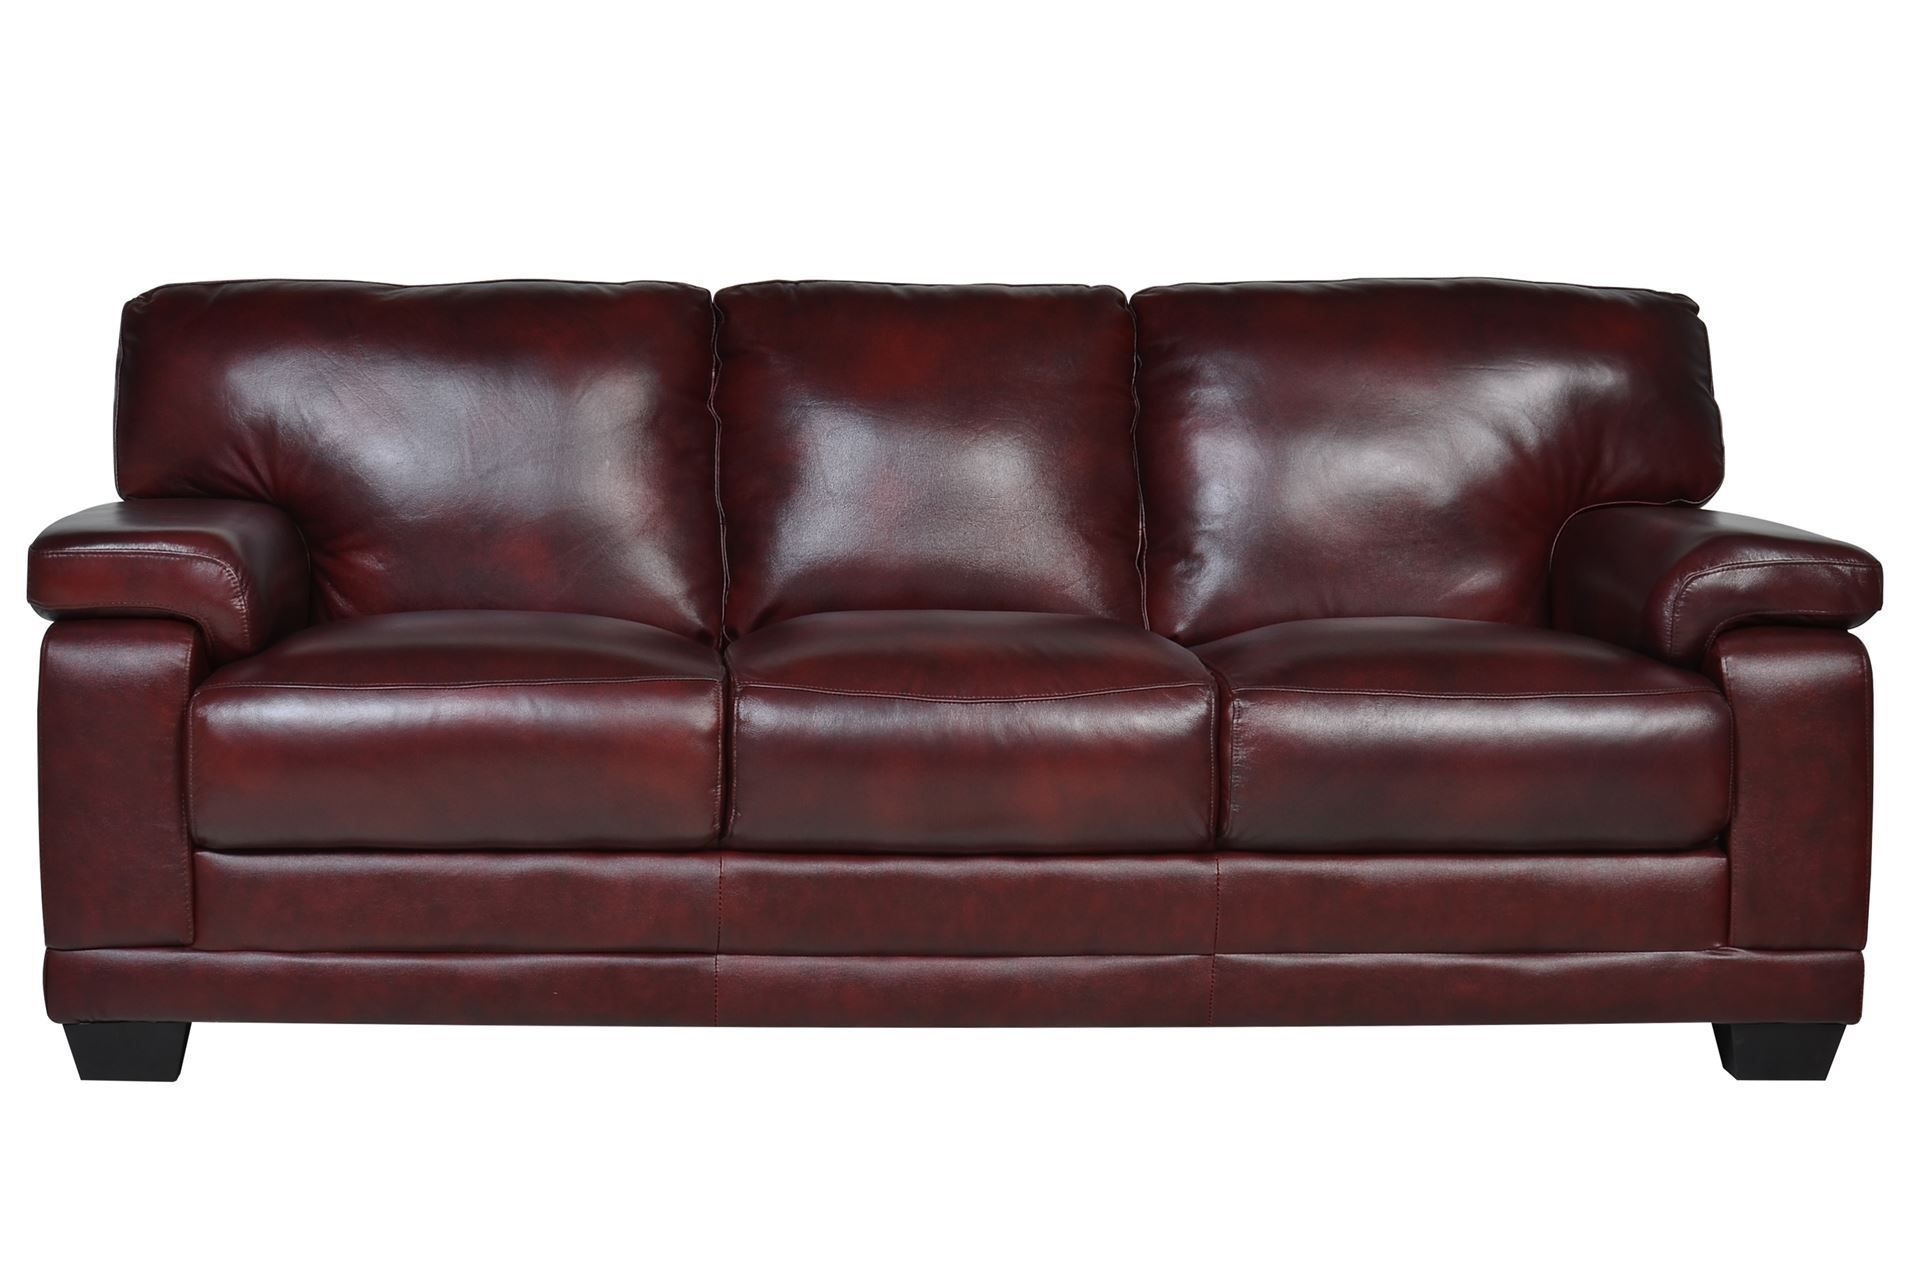 Experience The Buttery Smooth Texture Of 100 Leather And Deluxe Support Of Pocket Coil Cushions On Our Blue Leather Sofa Navy Blue Leather Sofa Burgundy Sofas